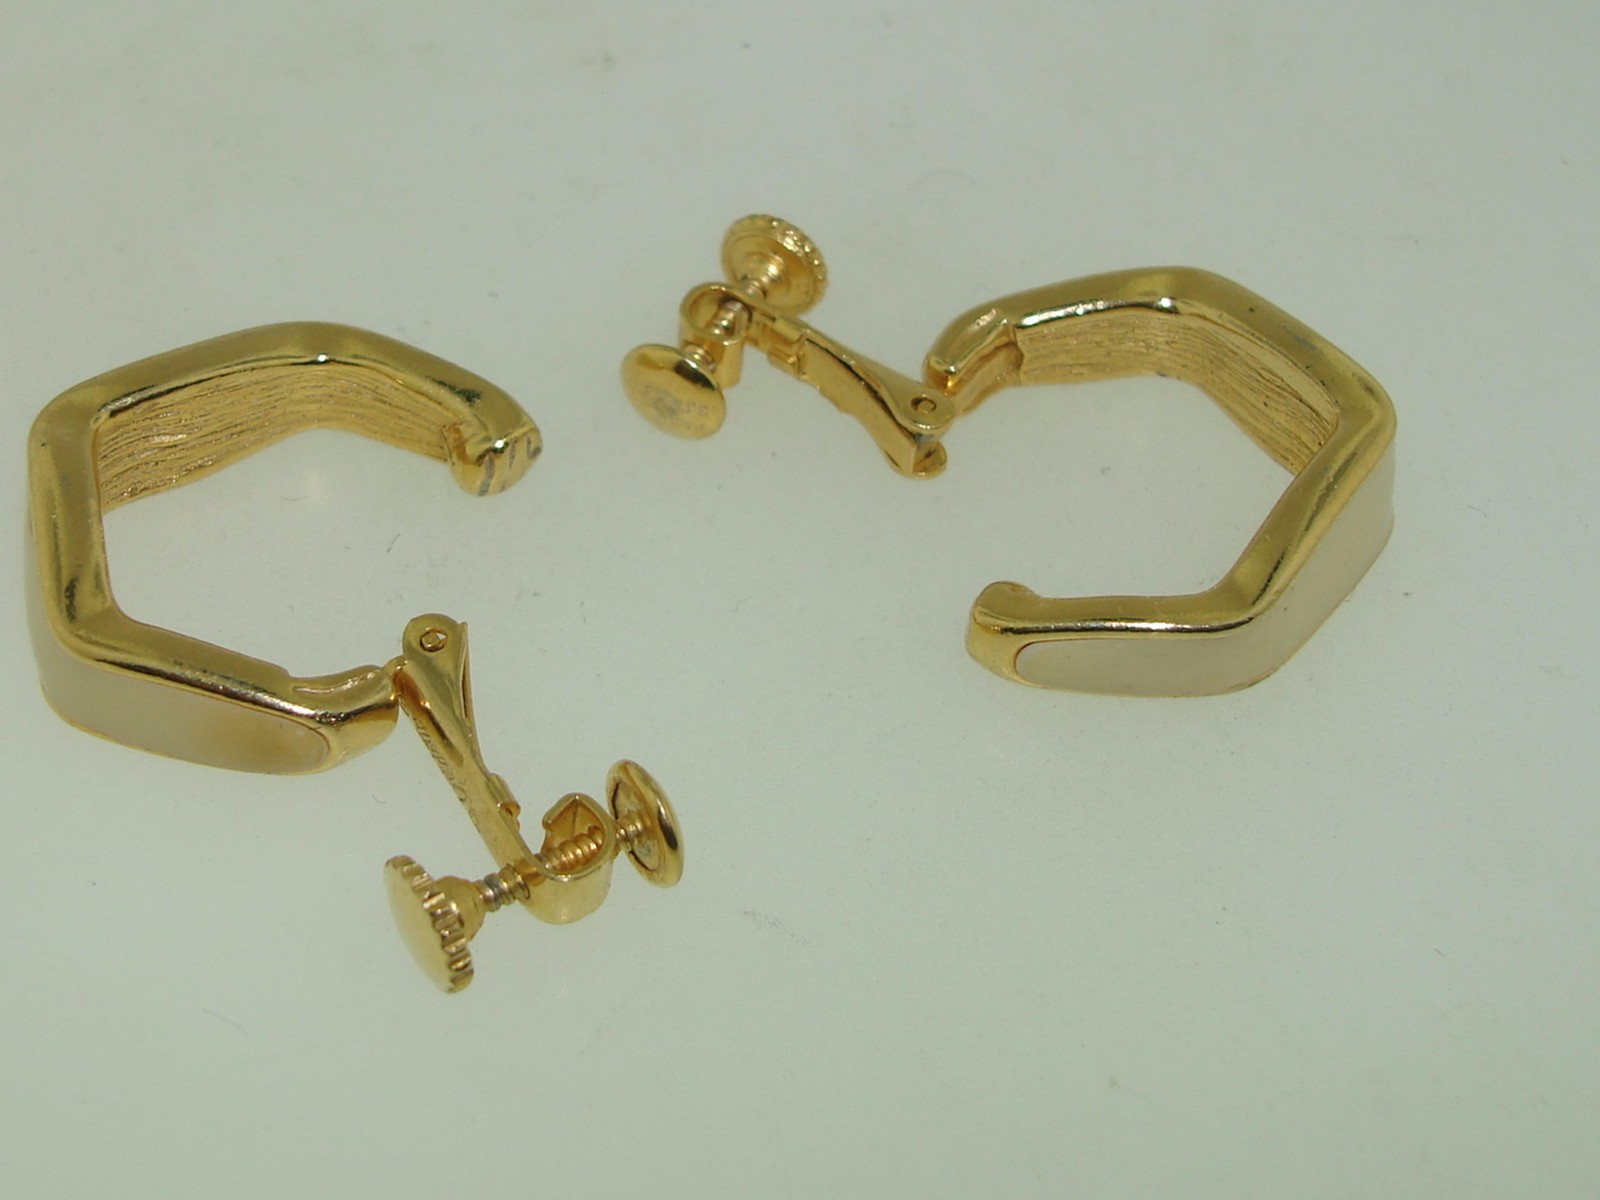 Beautiful Classic Vintage 1965 Patent Dated Goldette Creme